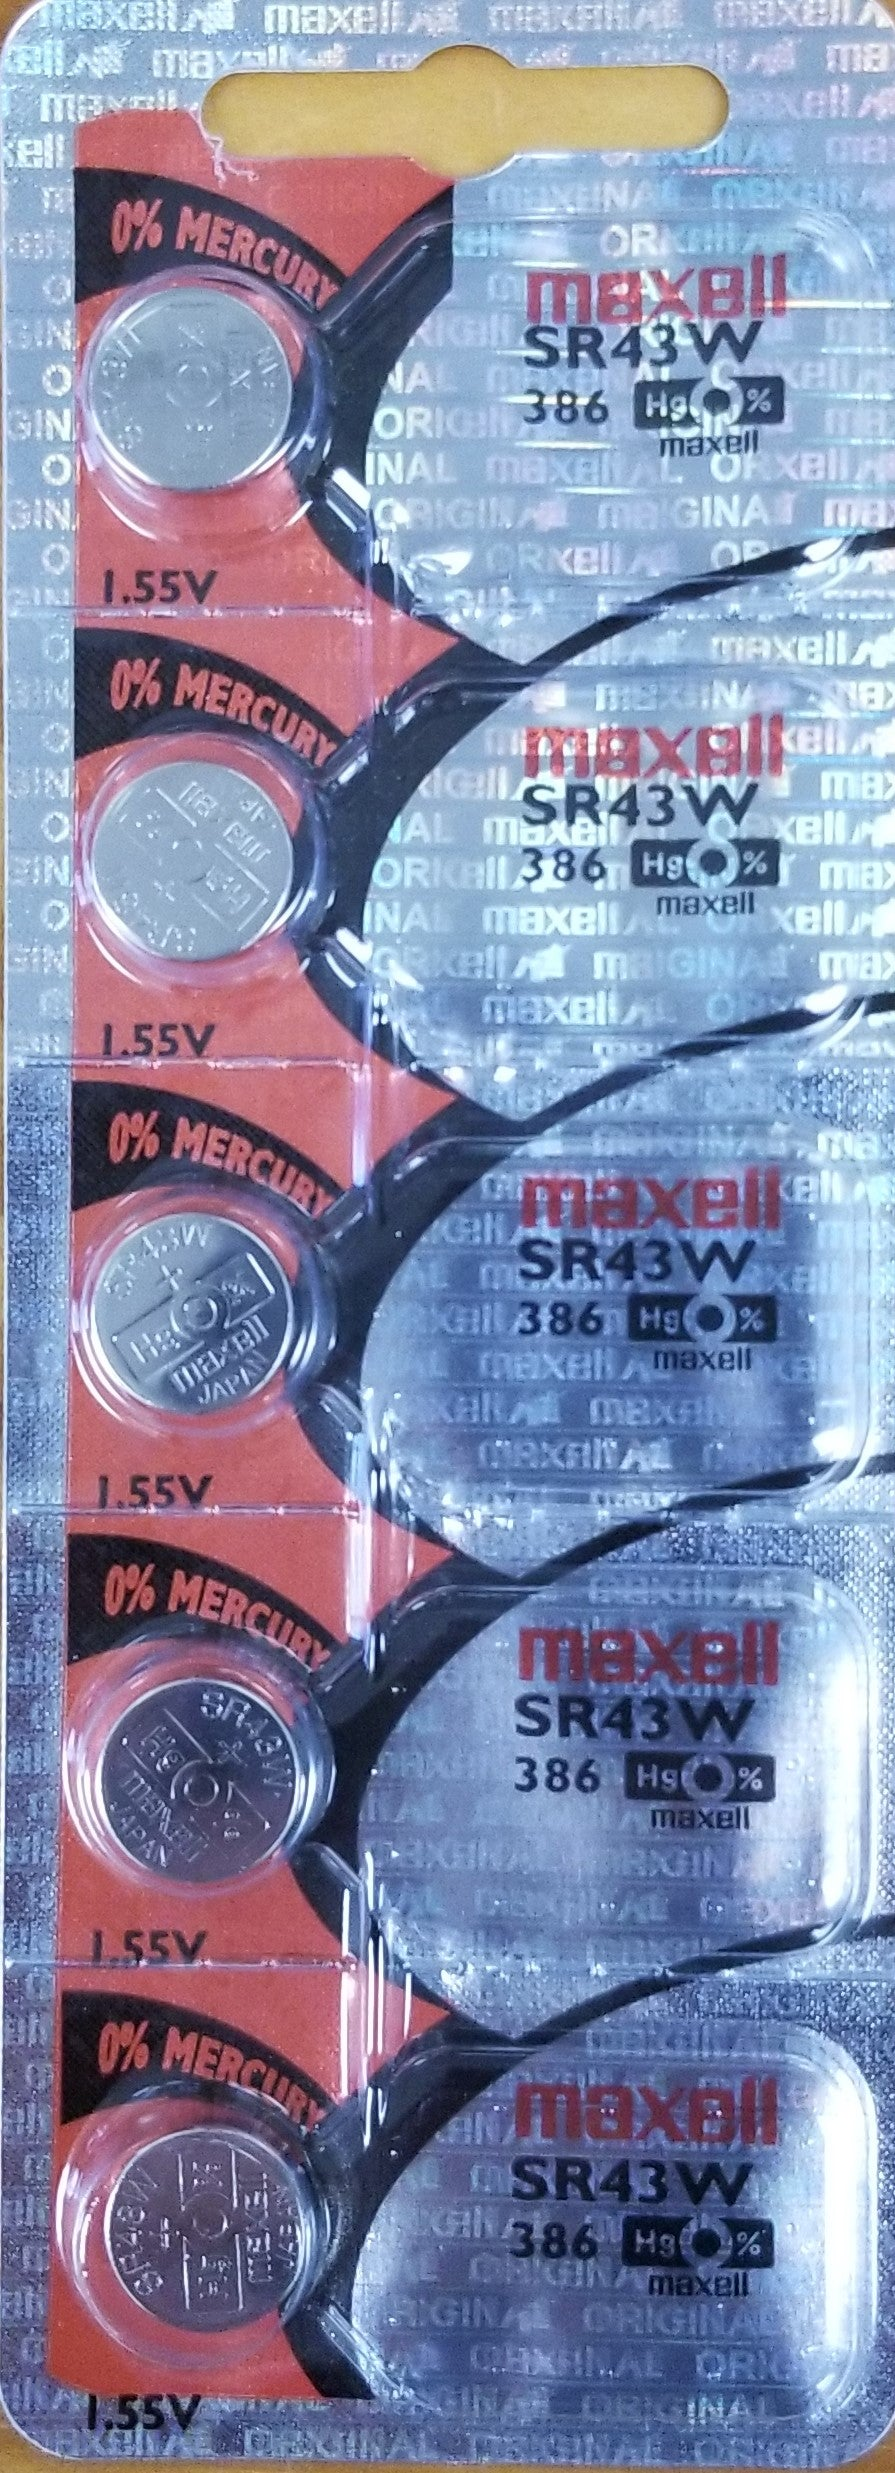 Maxell #386 SR43W 1.55v Silver Oxide Battery - Tear Strip of 5